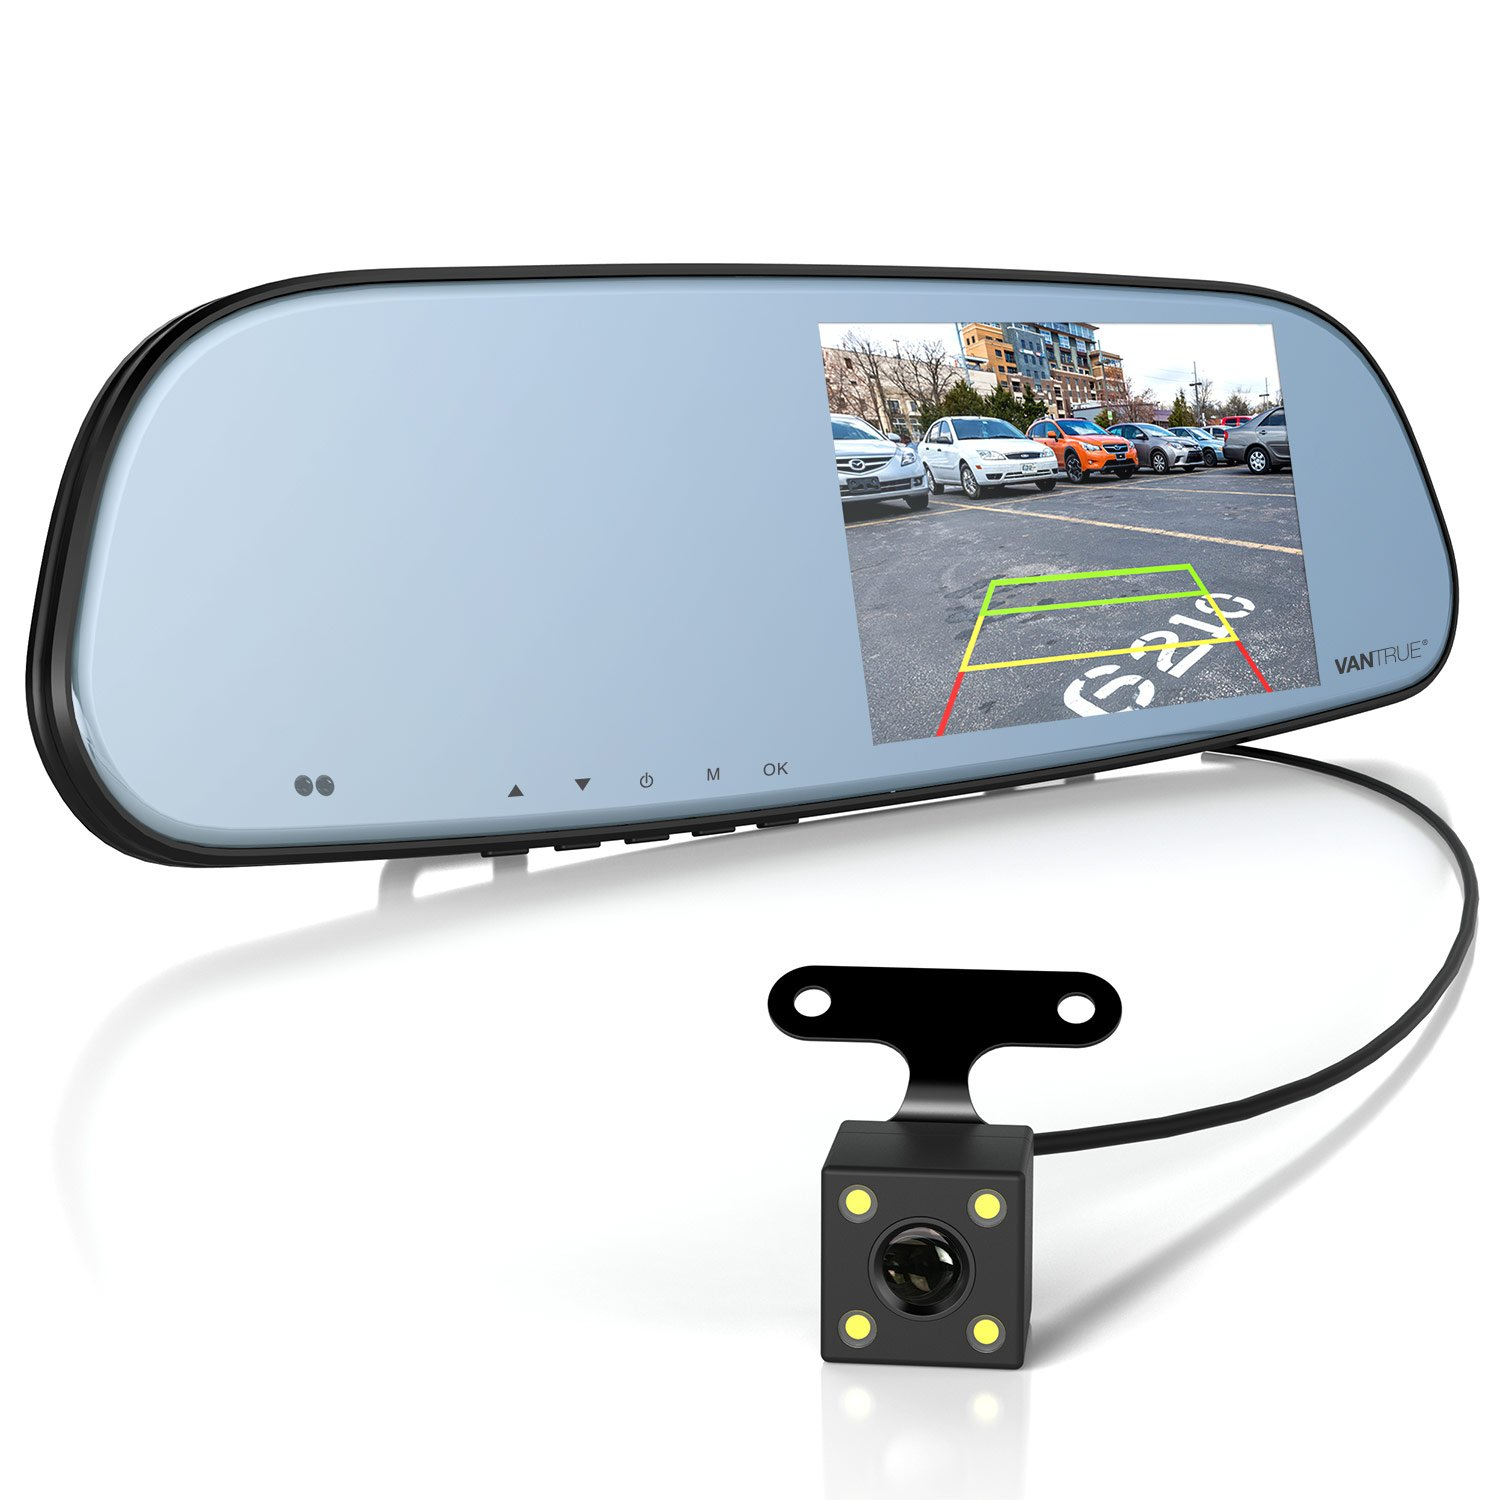 "Vantrue N3 Dual Dash Cam Rearview Mirror Backup Camera 5"" IPS Touch Screen FHD 1080P Front and Rear Dash Cam With IP 67 Waterproof Rear View Reverse Back up Camera, LLL Night Visison by VANTRUE"